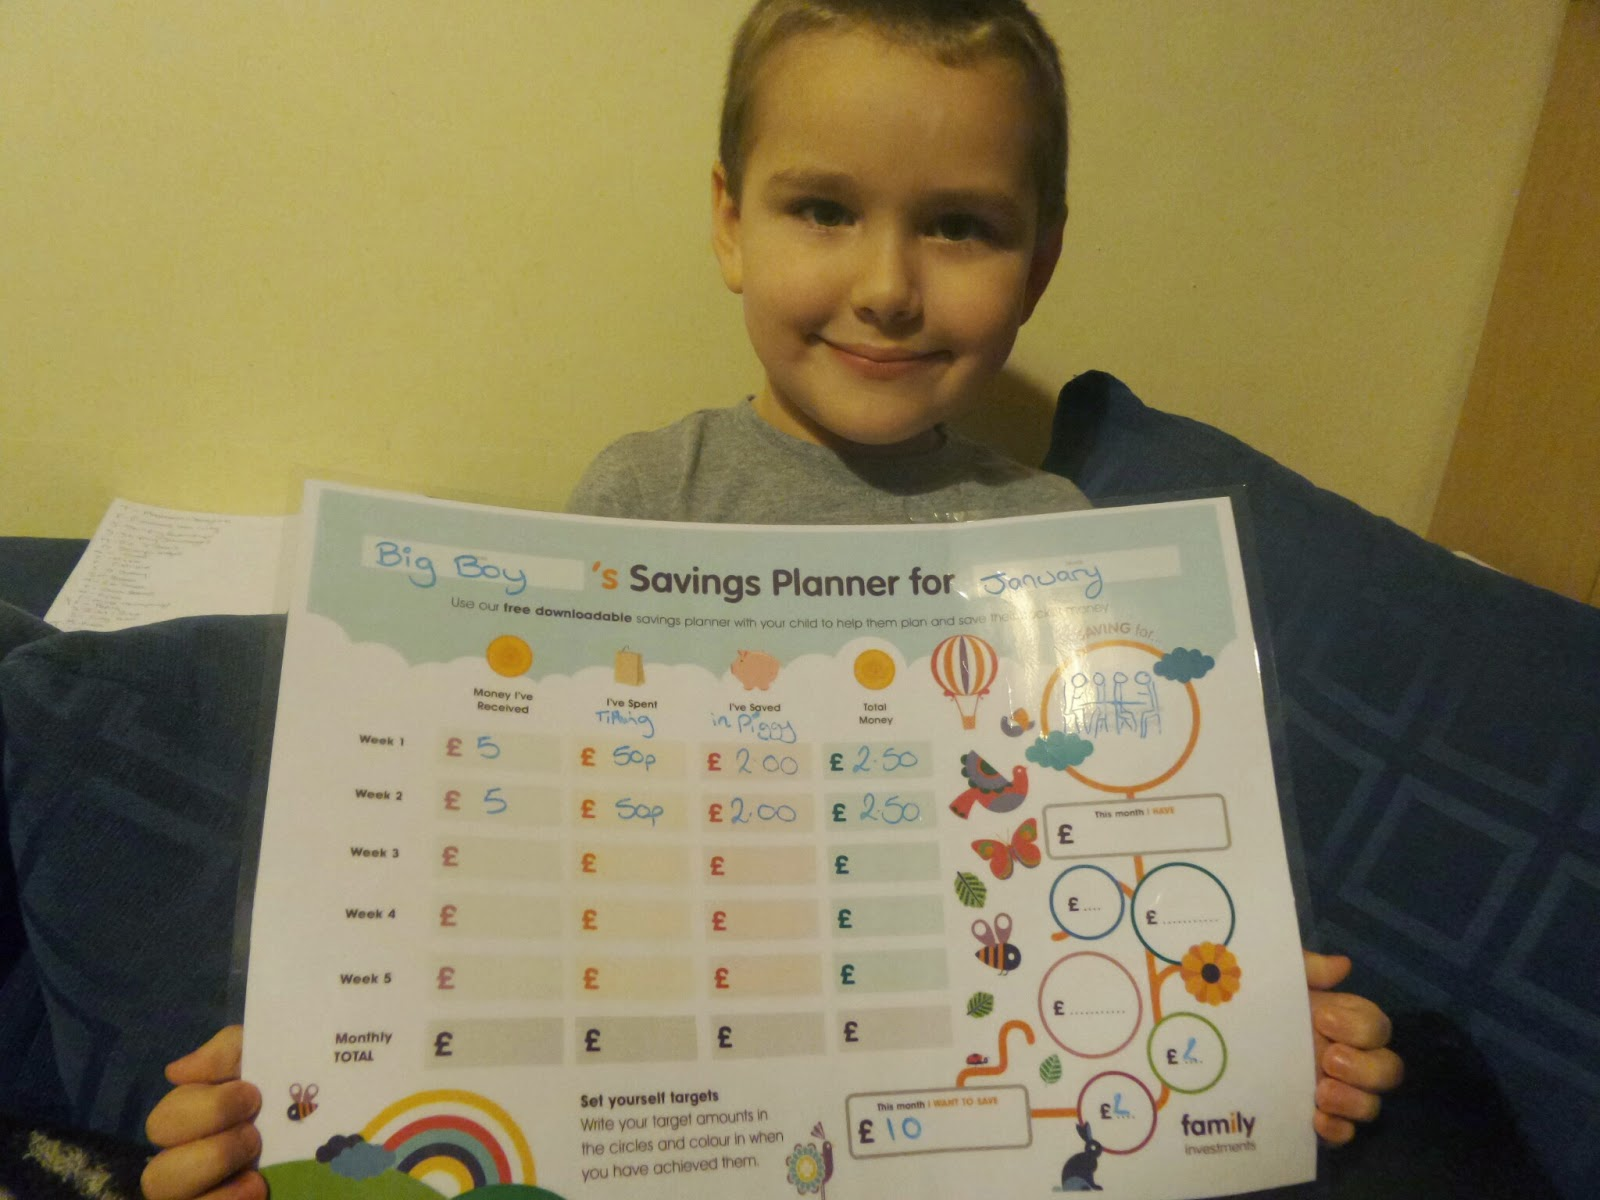 Big Boy and the Savings Planner